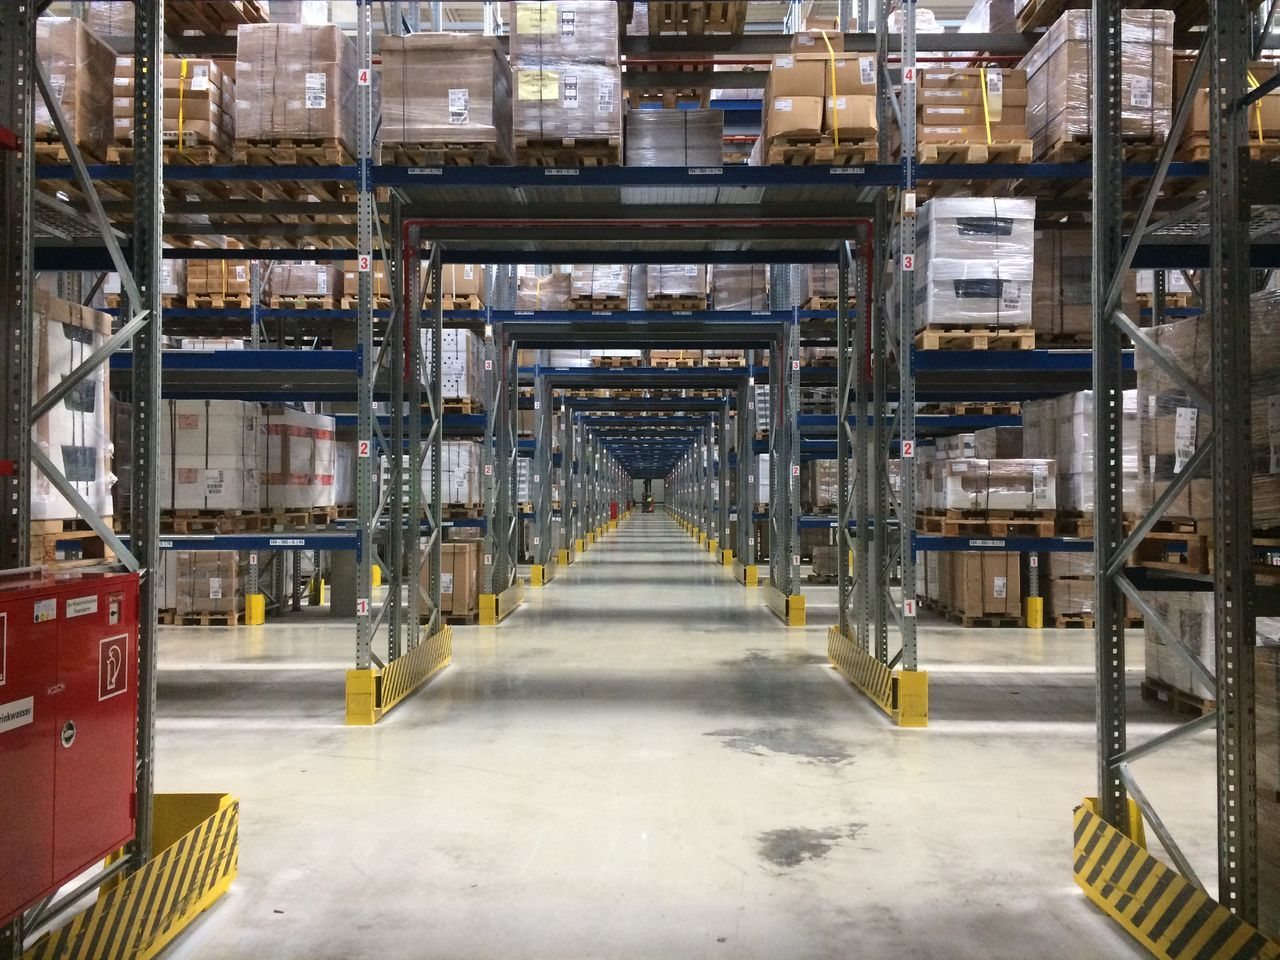 Biggest logistic warehouse in Dortmund, Germany Business Finance And Industry Career Cargo Commercial Factory Industry Industry Inventory Logistics Management Packaging Shipping  Shipping  Solution Stock Storage Storage Room Store Supply System Technology Transportation Warehouse Work Working